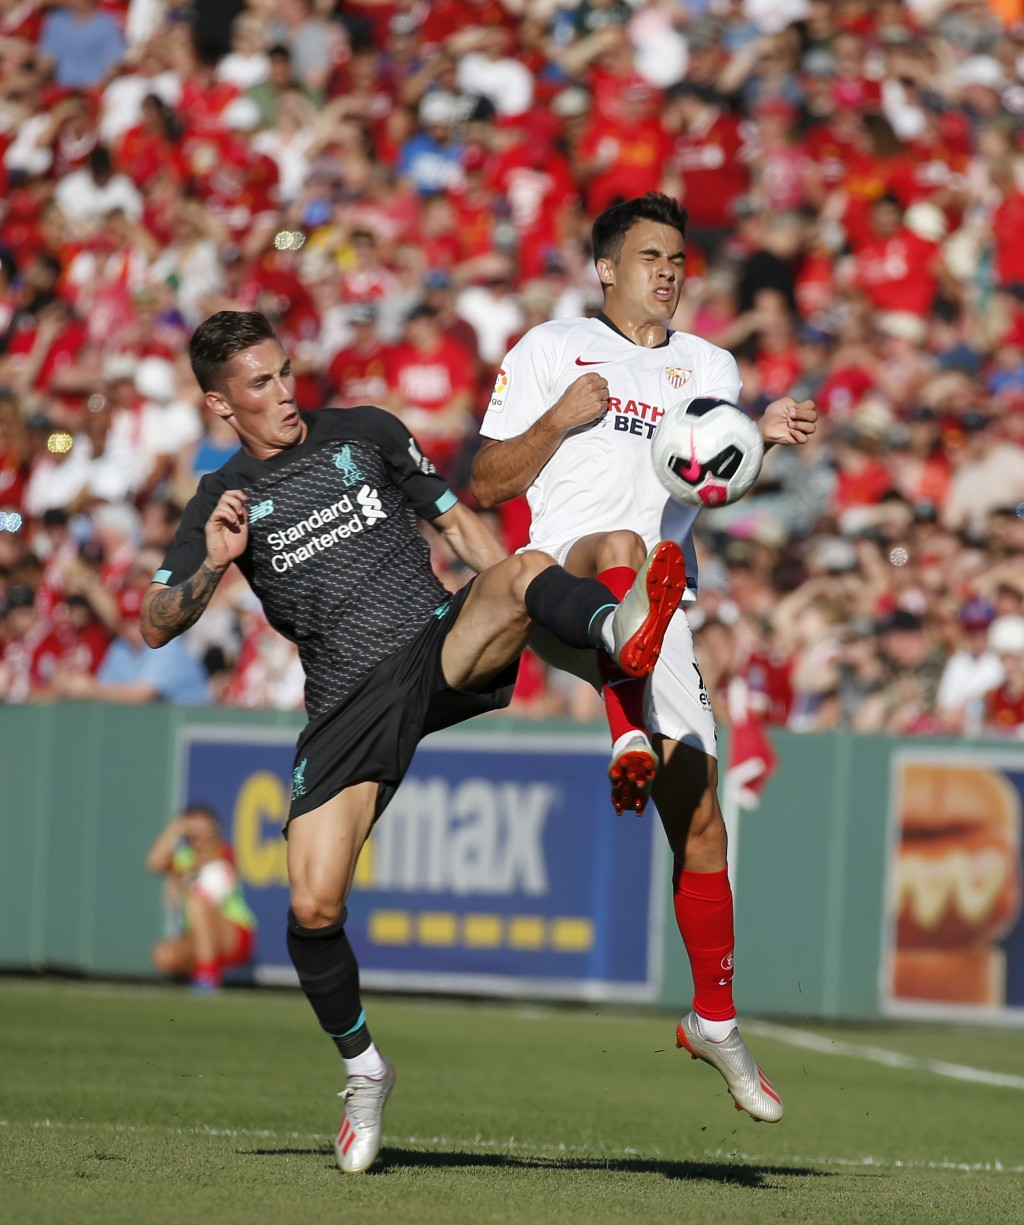 Liverpool's Harry Wilson, left, and Sevilla's Reguilon Rodriguez Sergio vie for the ball during the first half of a friendly soccer match at Fenway Pa...